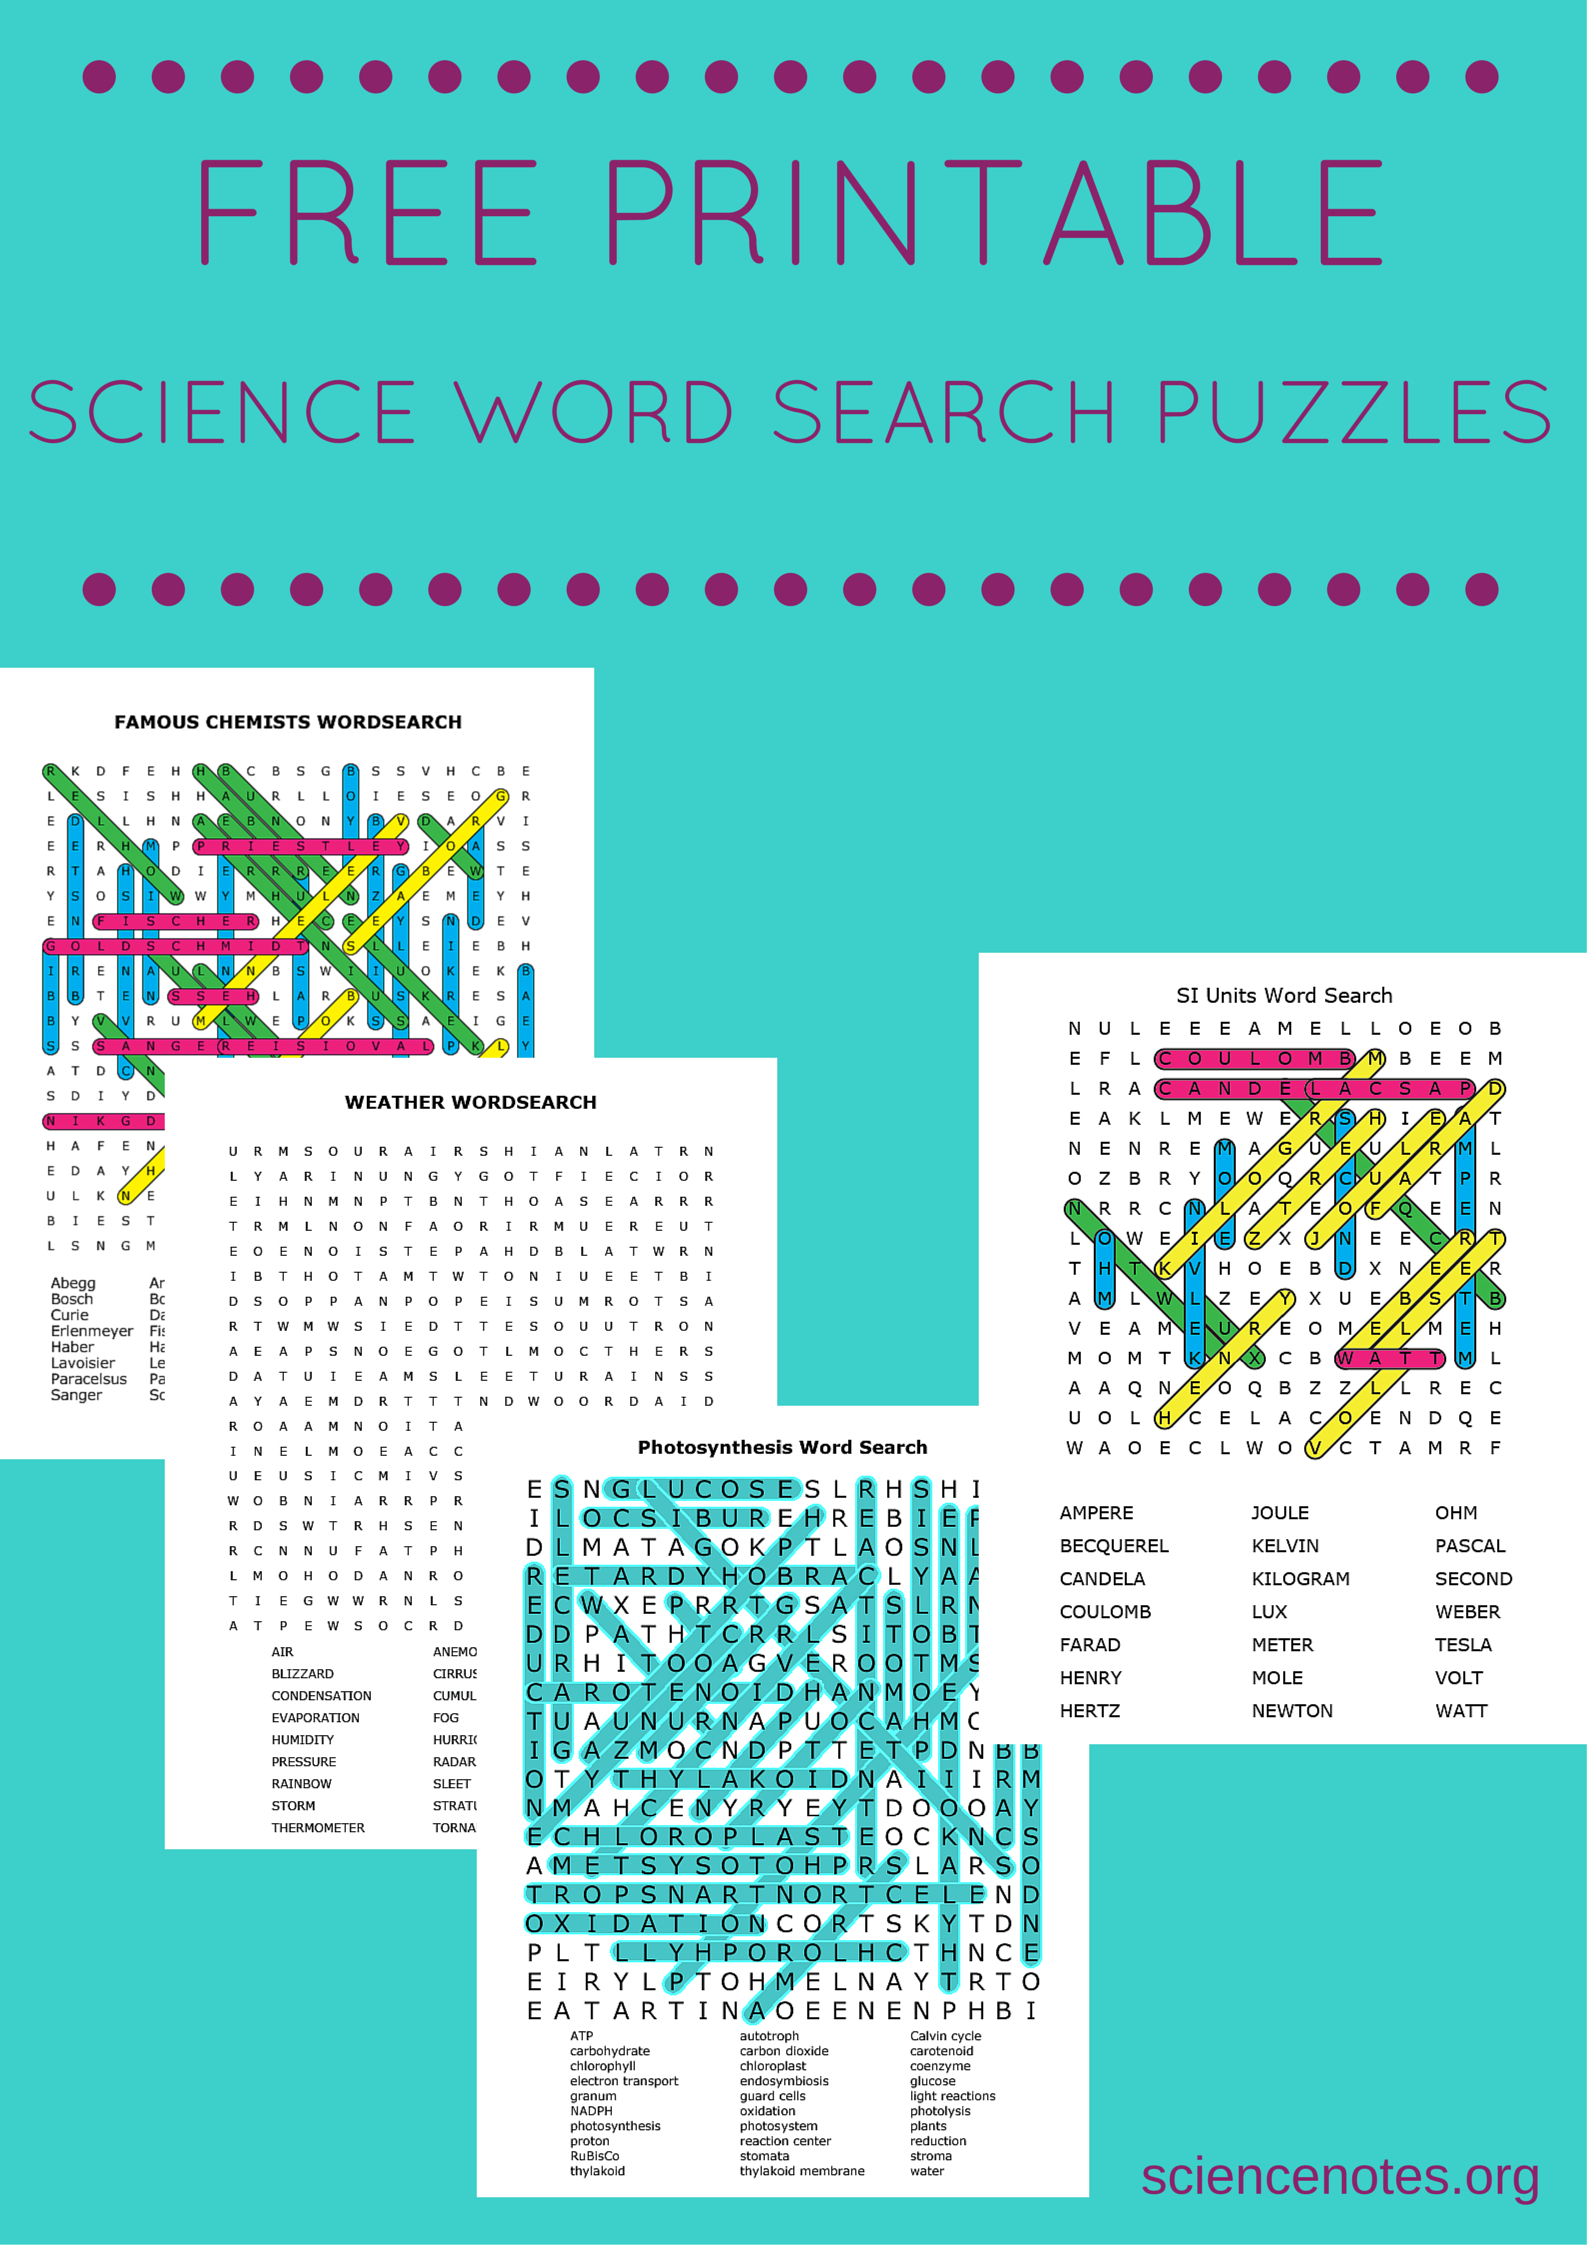 Free Printable Science Word Search Puzzles - Printable Science Puzzles